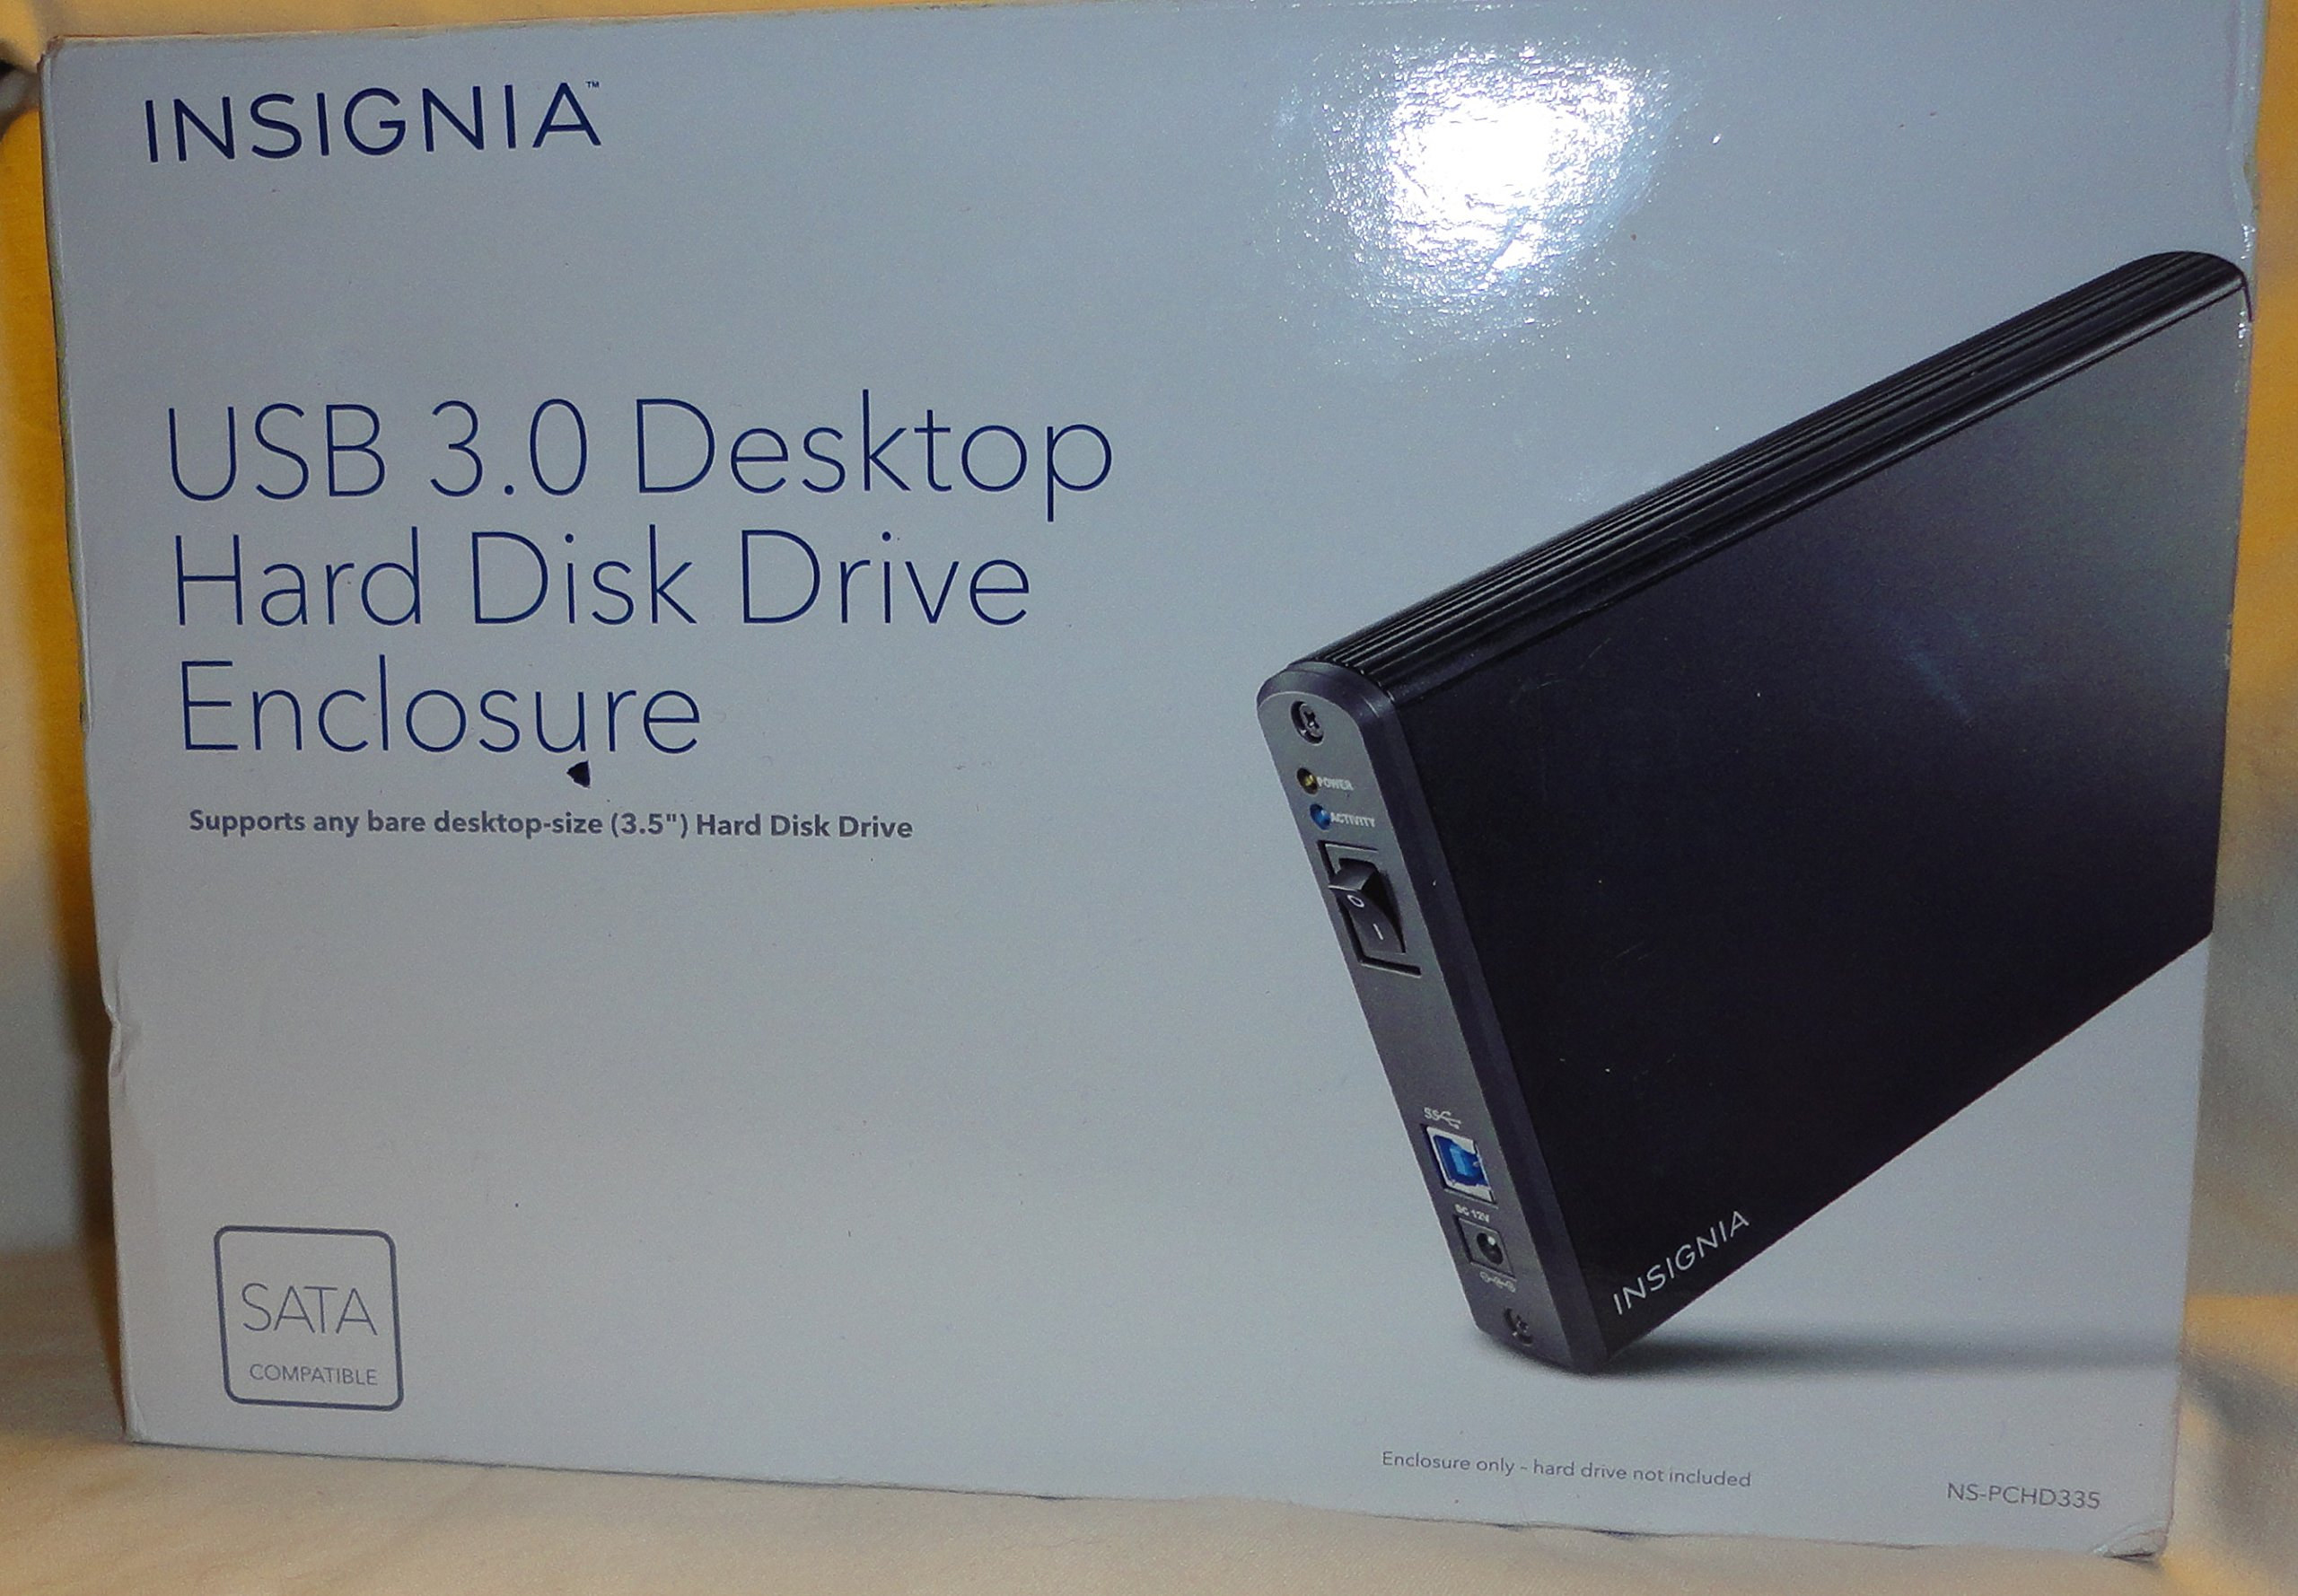 Insignia USB 3.0 Desktop Hard Disk Drive Enclosure